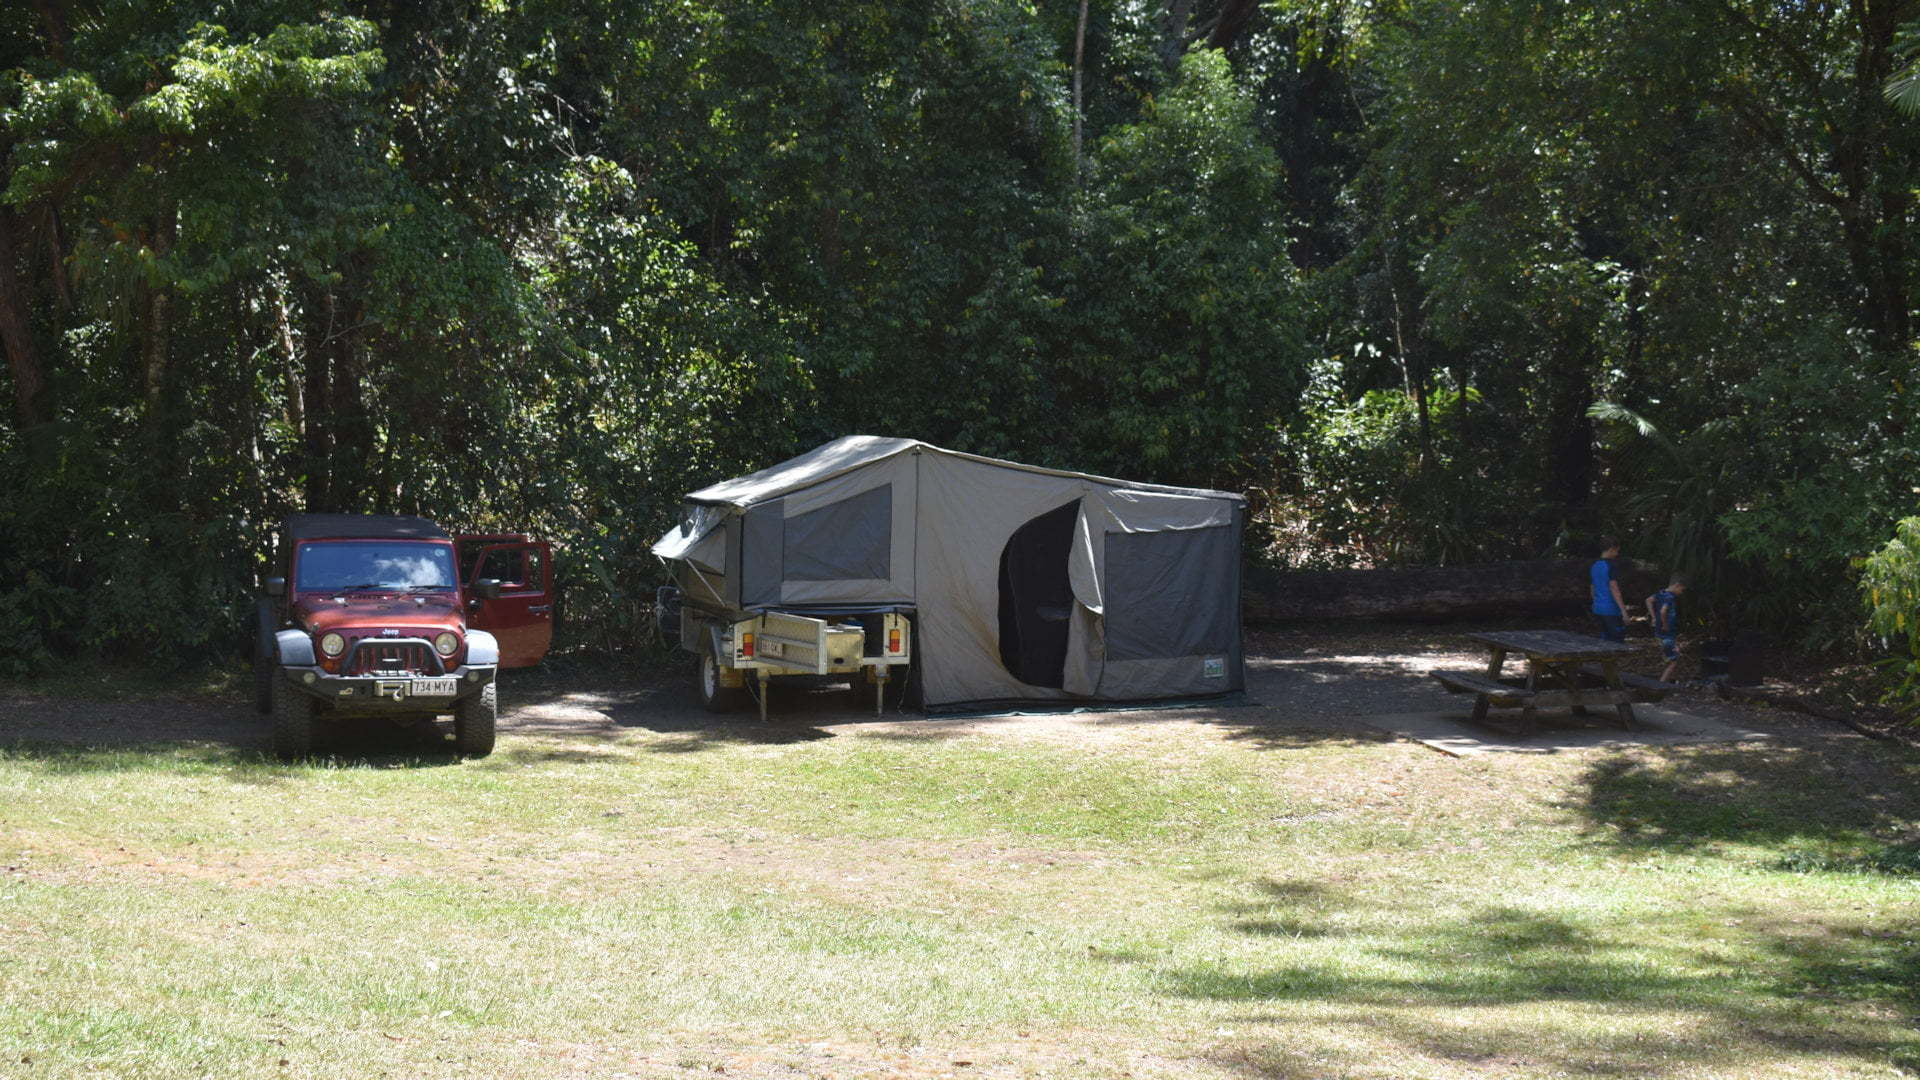 Jeep Wrangler and camper trailer campsite, at Sheepstation Creek Campgrounds in Border Ranges National Park